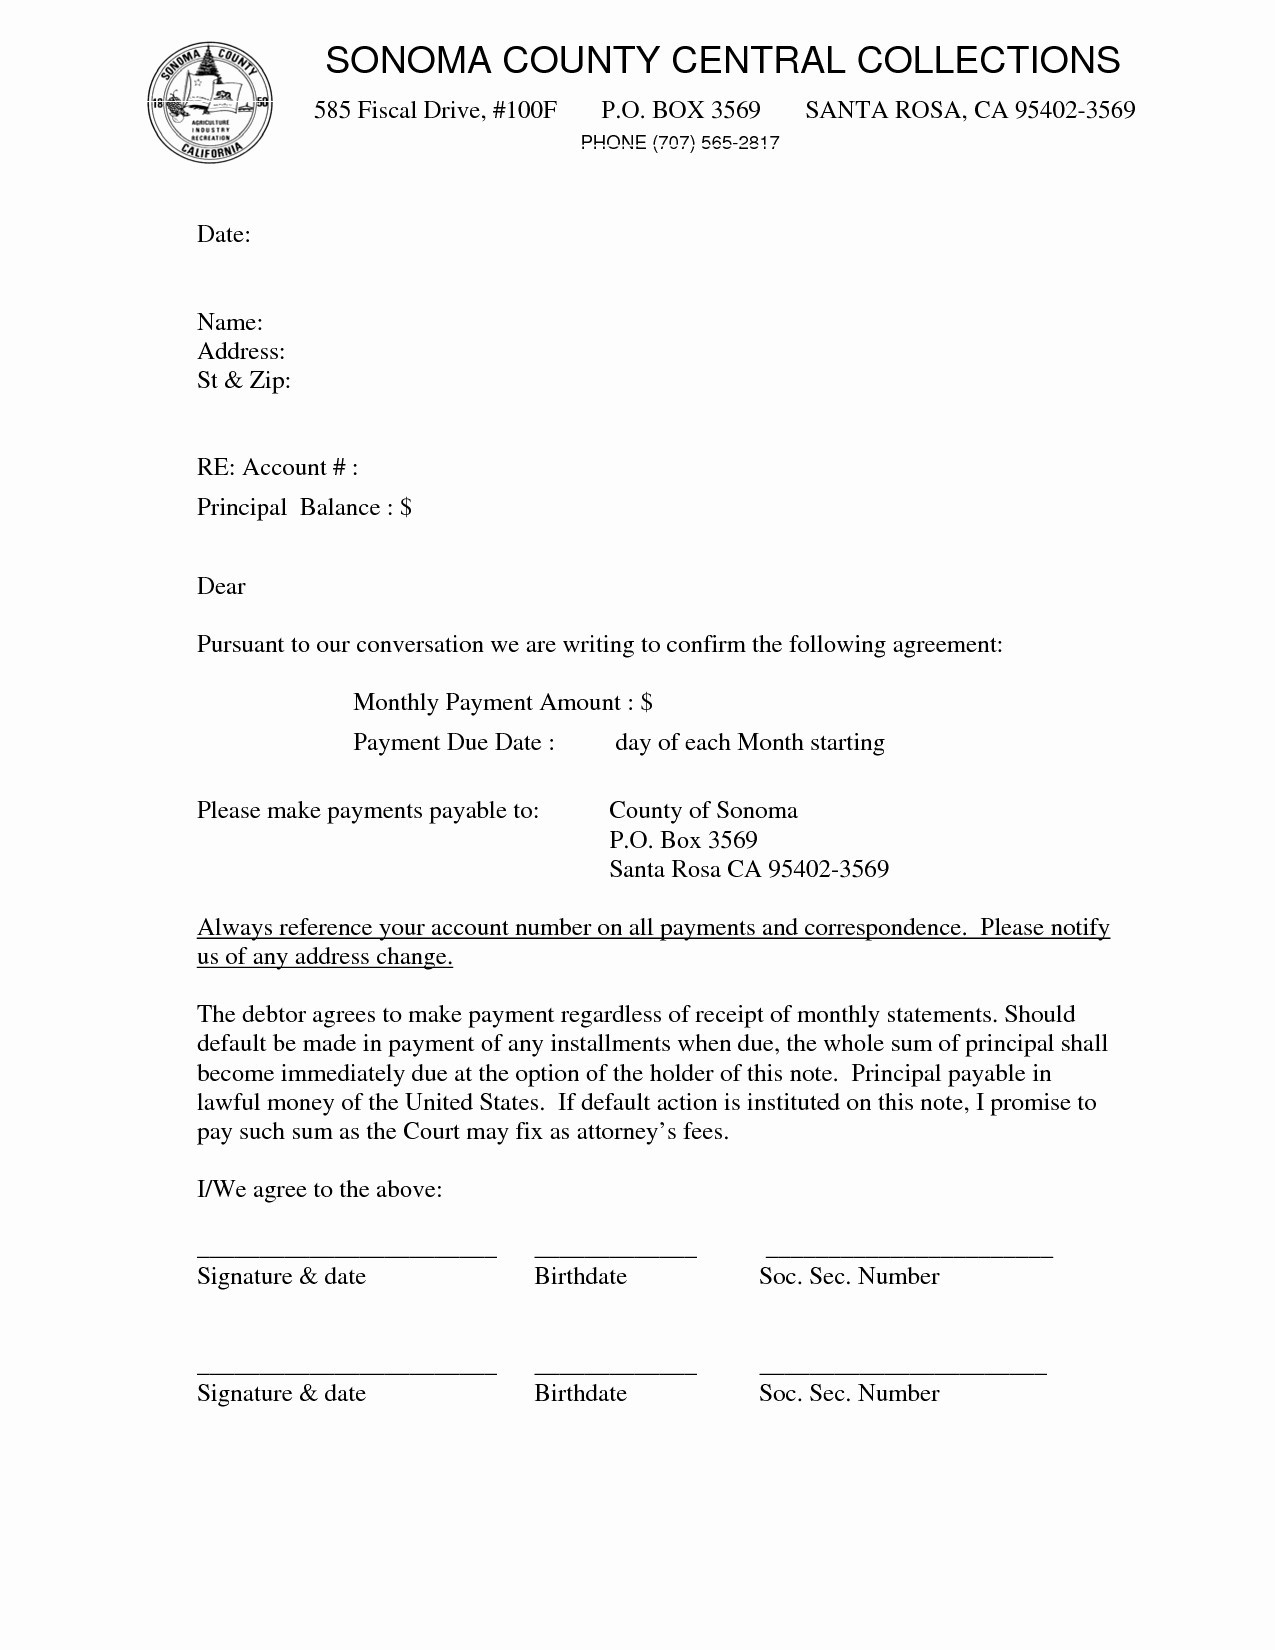 Payment Agreement Letter Template - Payment Agreement Letter format Inspirationa Letter format for